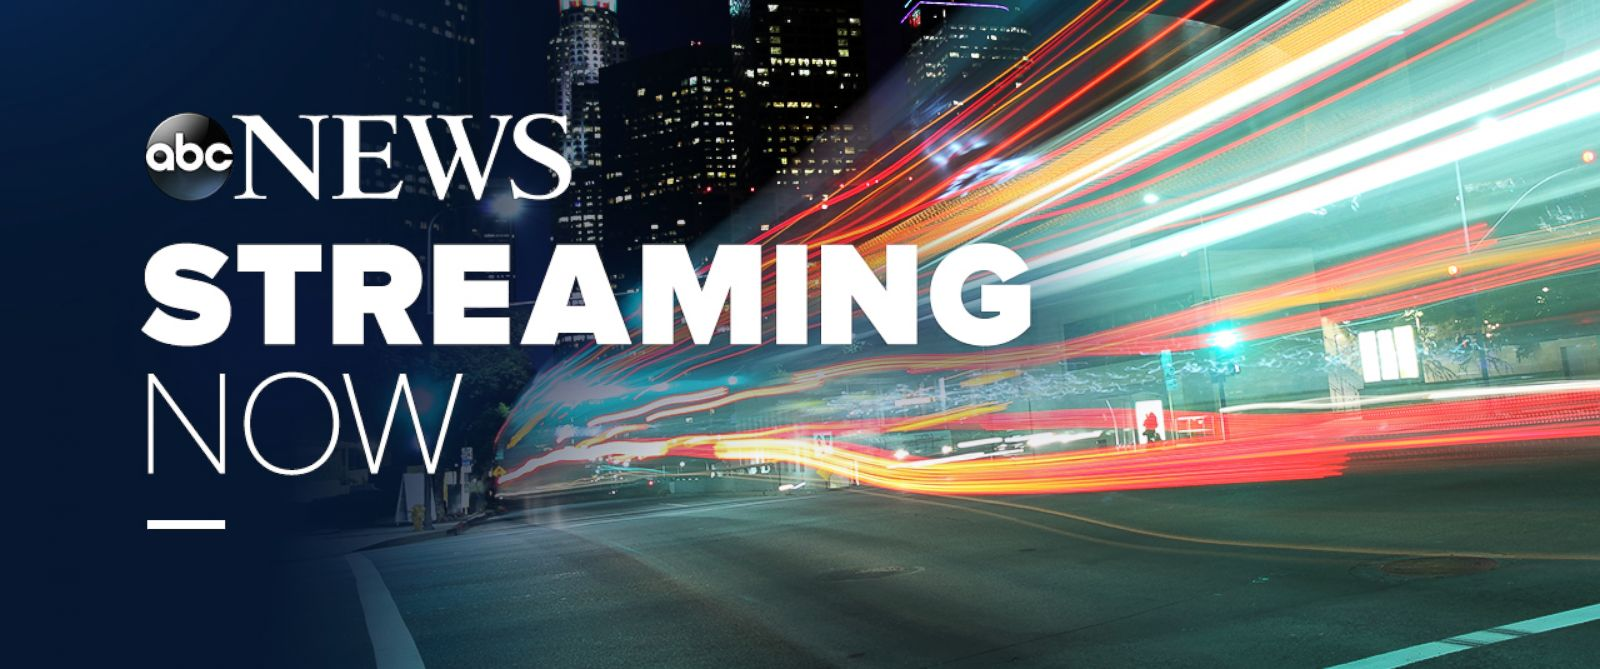 Streaming Now on ABC News